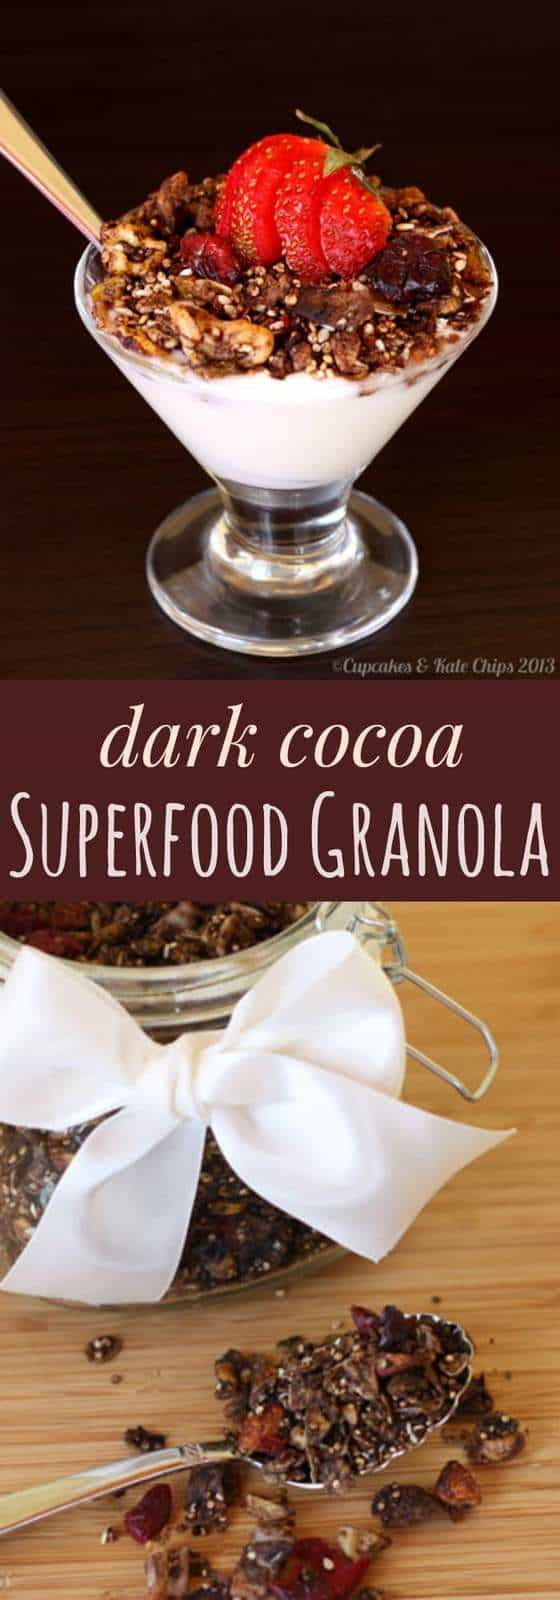 Dark Cocoa Superfood Granola - chocolate for breakfast is good for you when add it to a healthy recipe filled with nuts, oats, quinoa, flax seeds and more! | cupcakesandkalechips.com